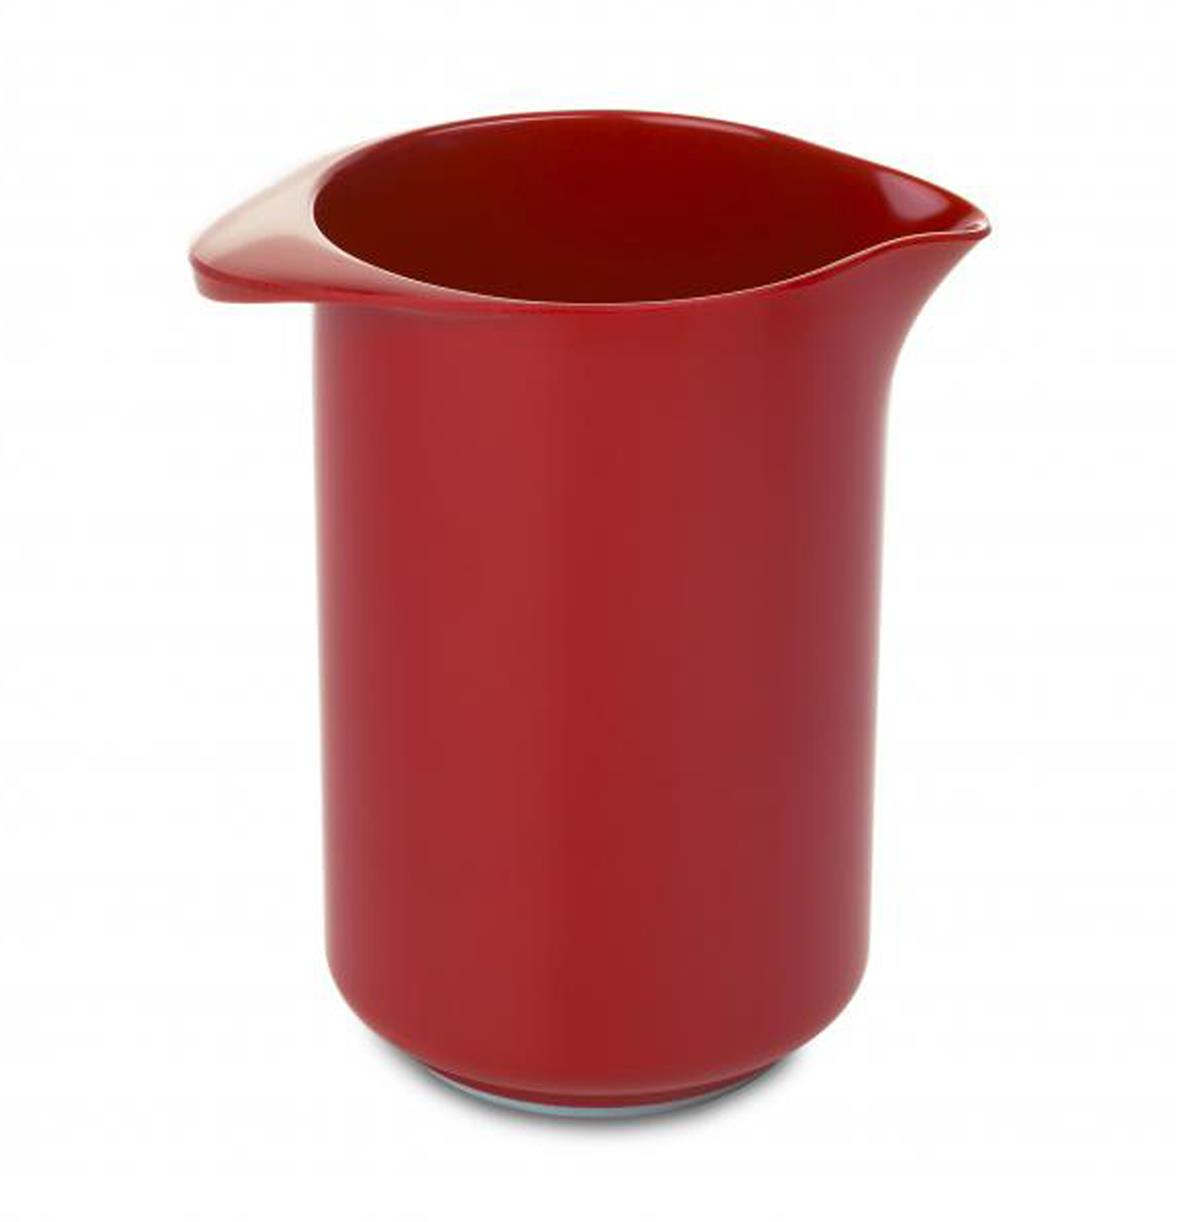 Rosti Mepal Utensil Jug Holder